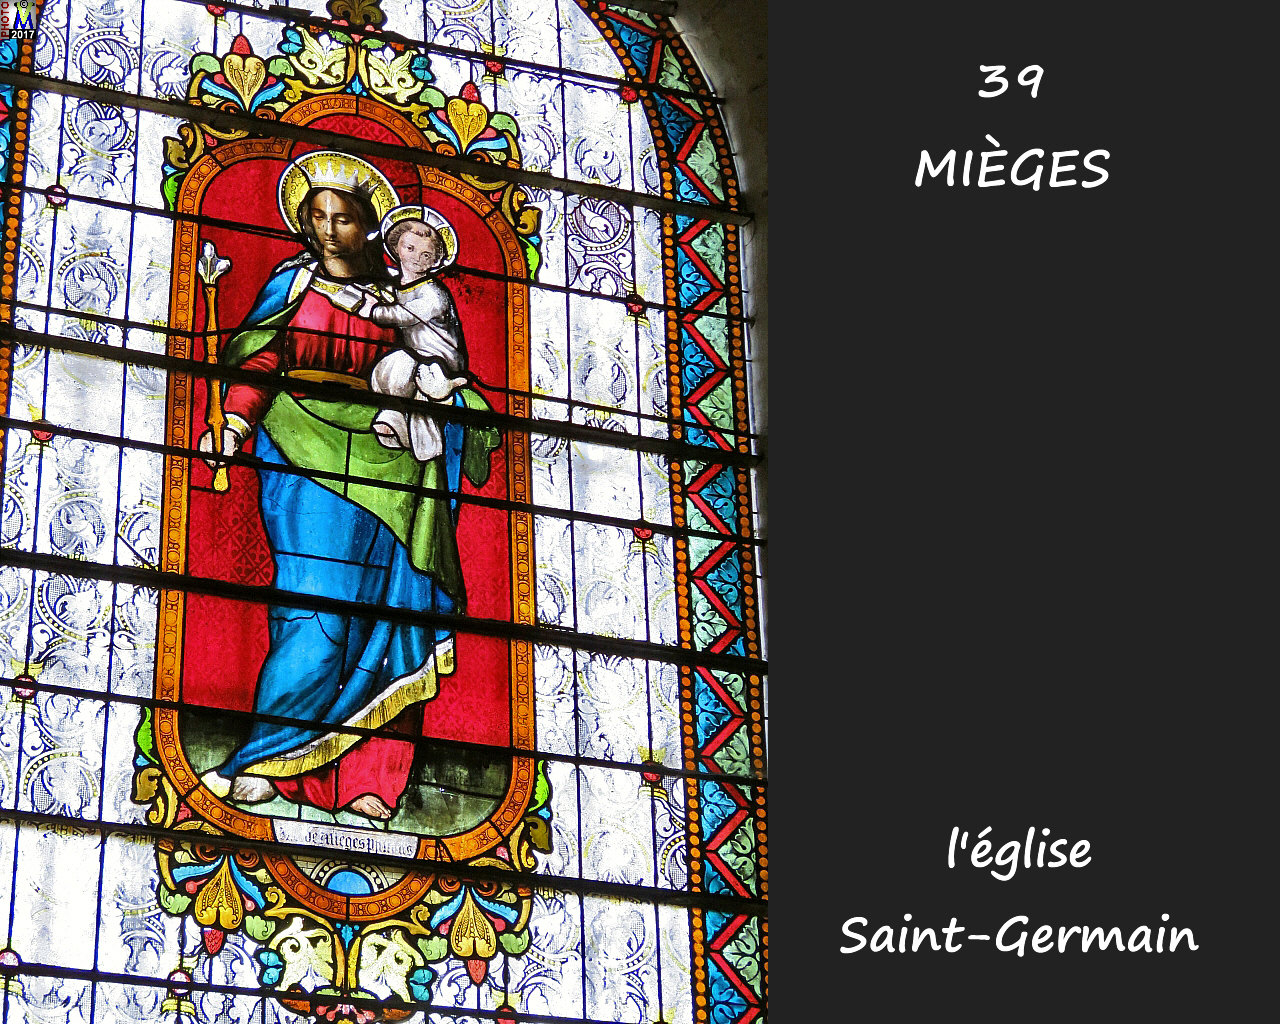 39MIEGES_eglise_238.jpg